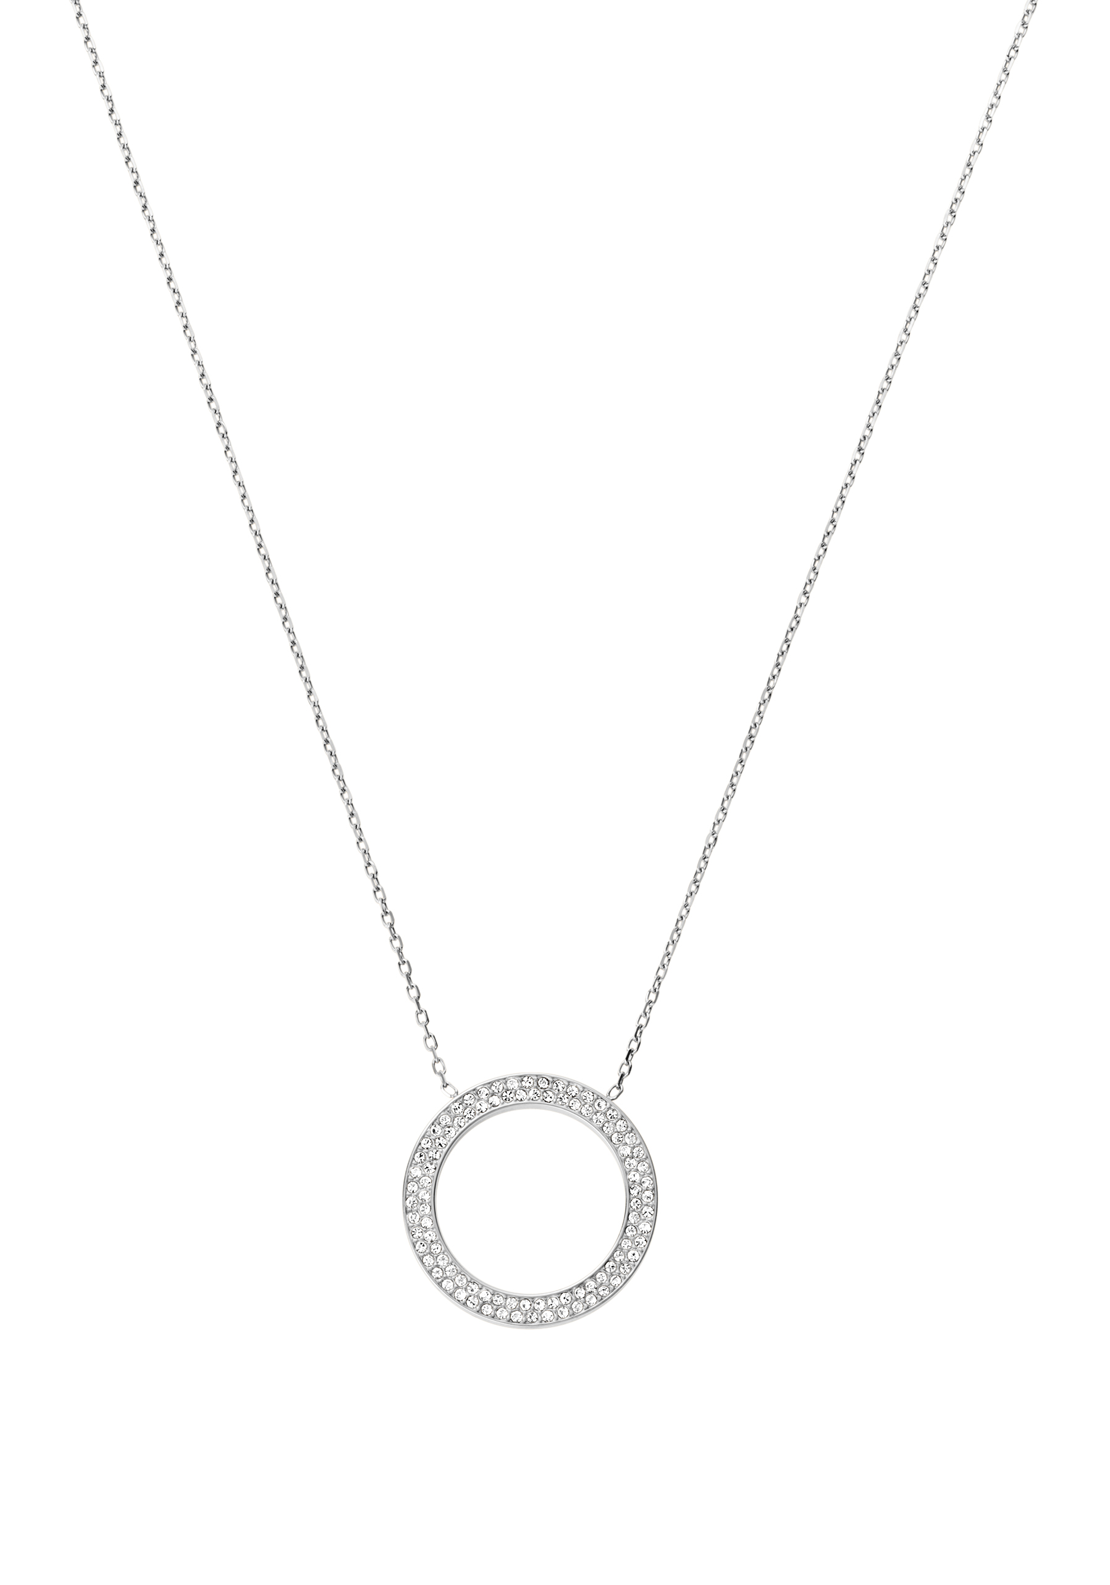 Michael Kors Womens Pave Circle Necklace, Silver